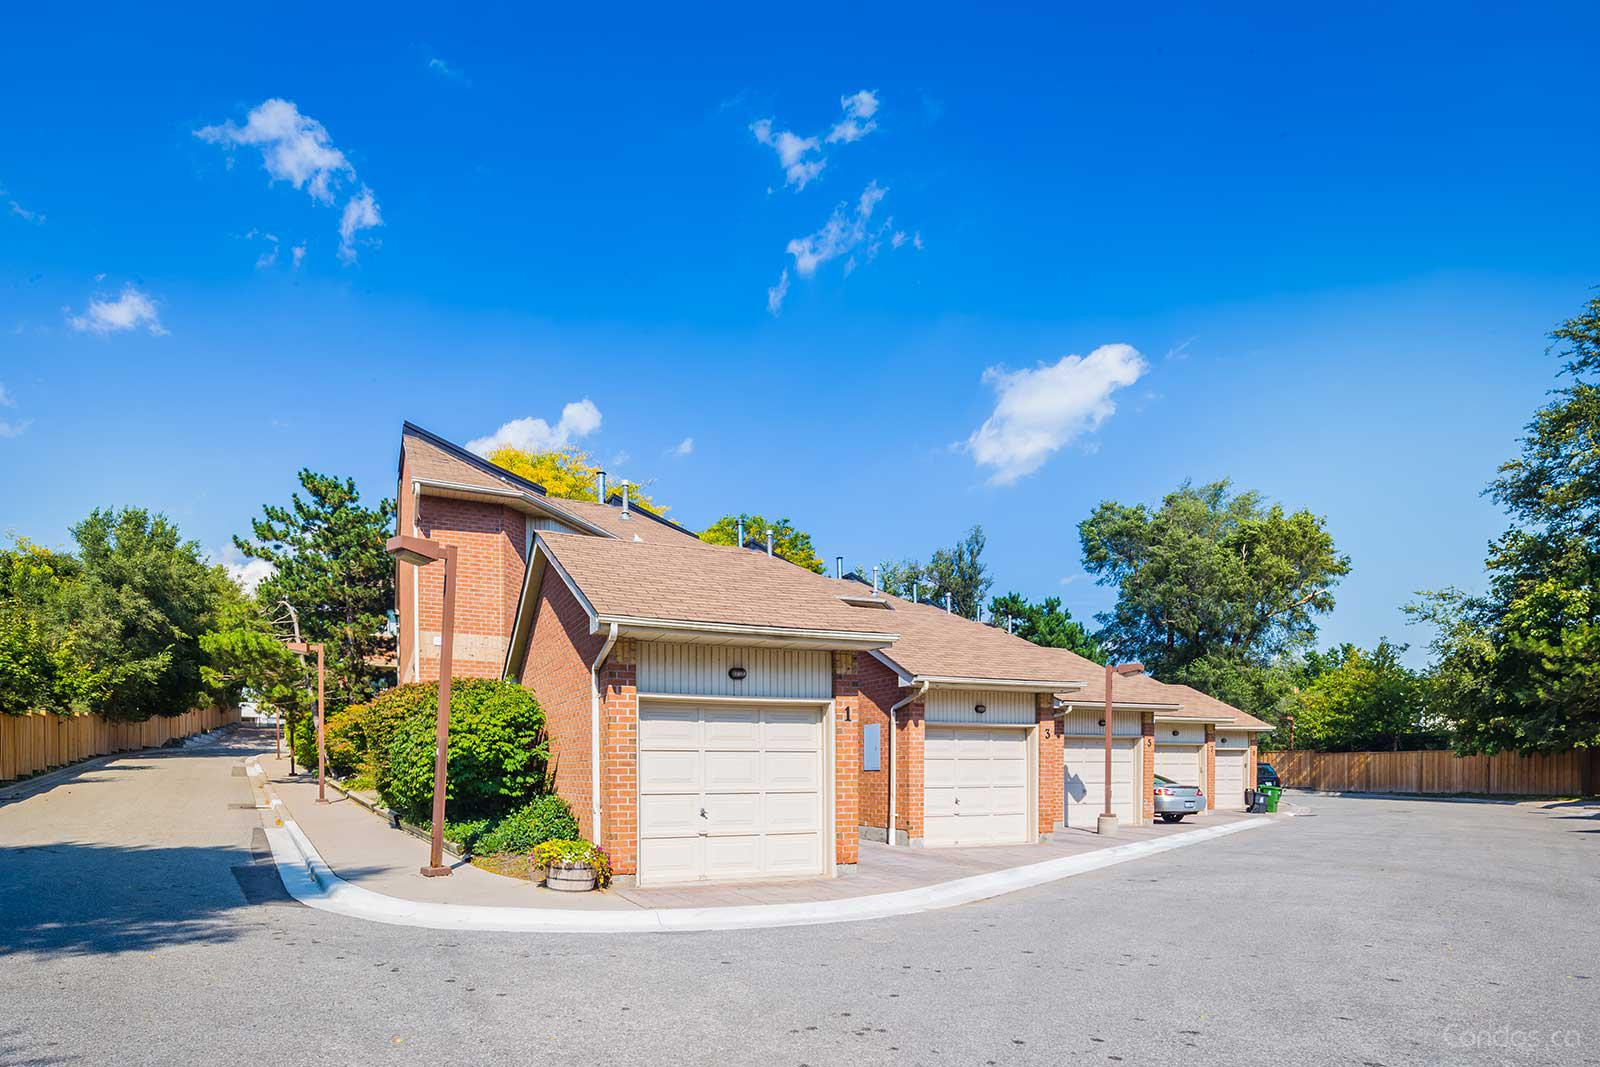 2-46 Rodeo Pathway Townhomes at 1 Rodeo Pathway, Toronto 1